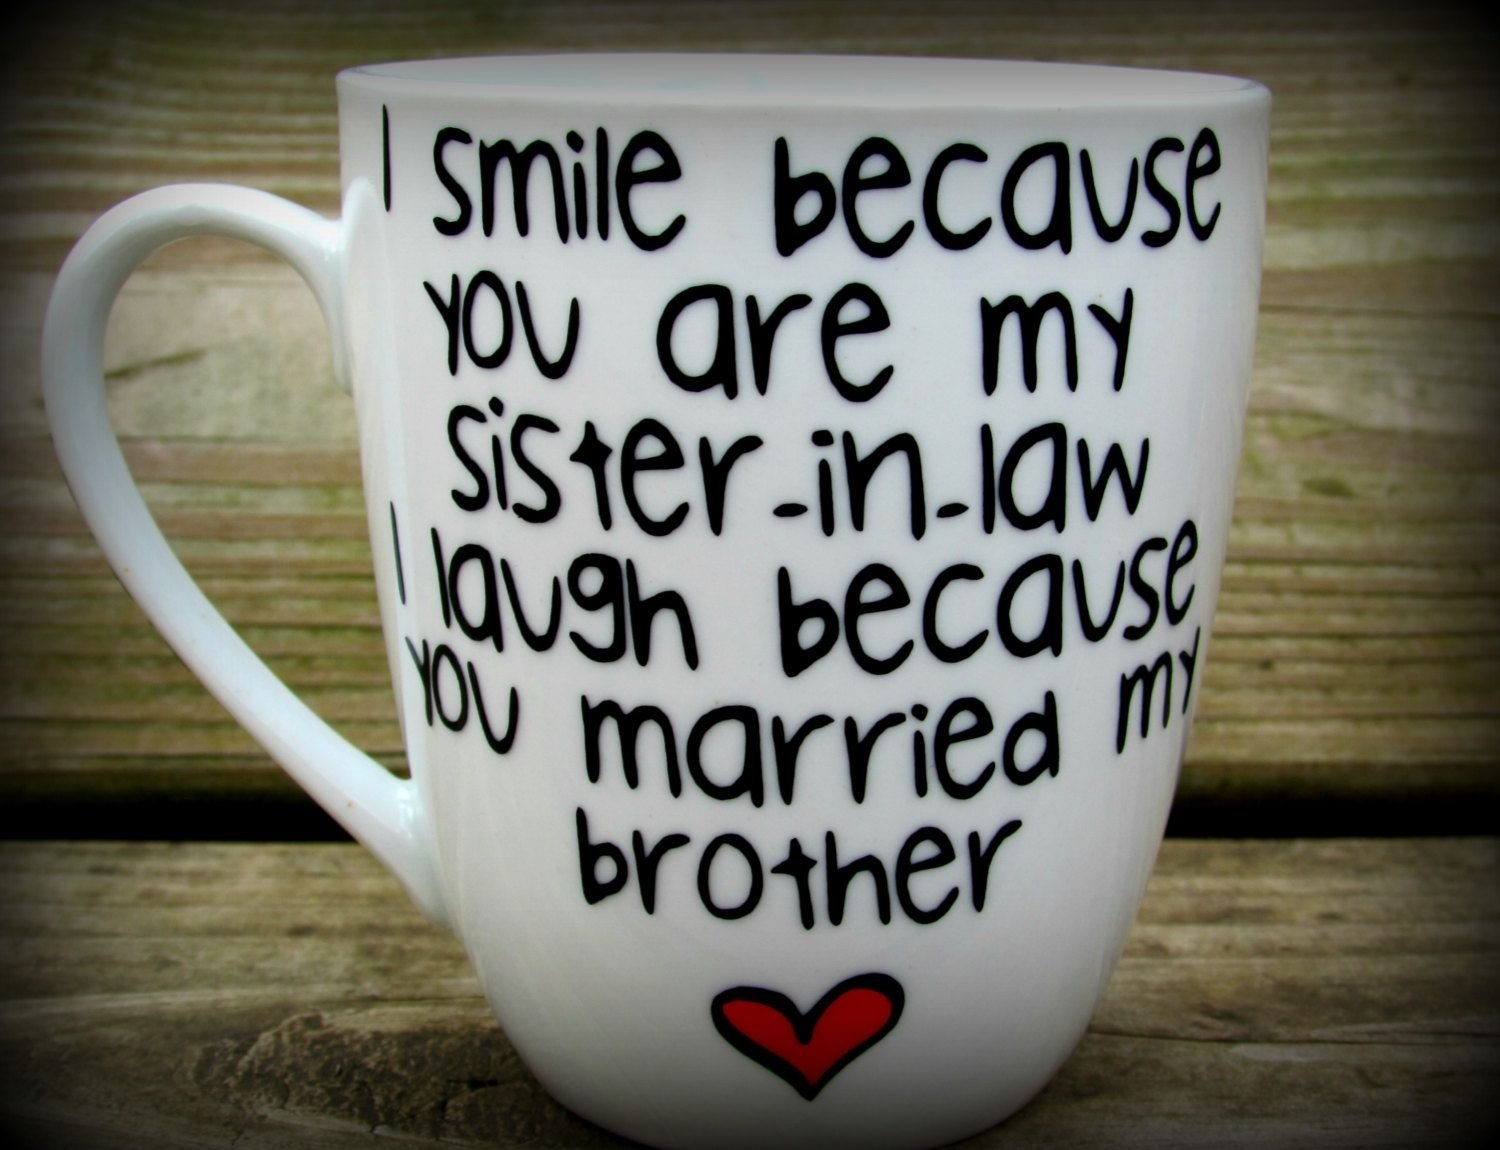 10 Trendy Gift Idea For Sister In Law sister in law sister in law gift sister in law mug sister in law